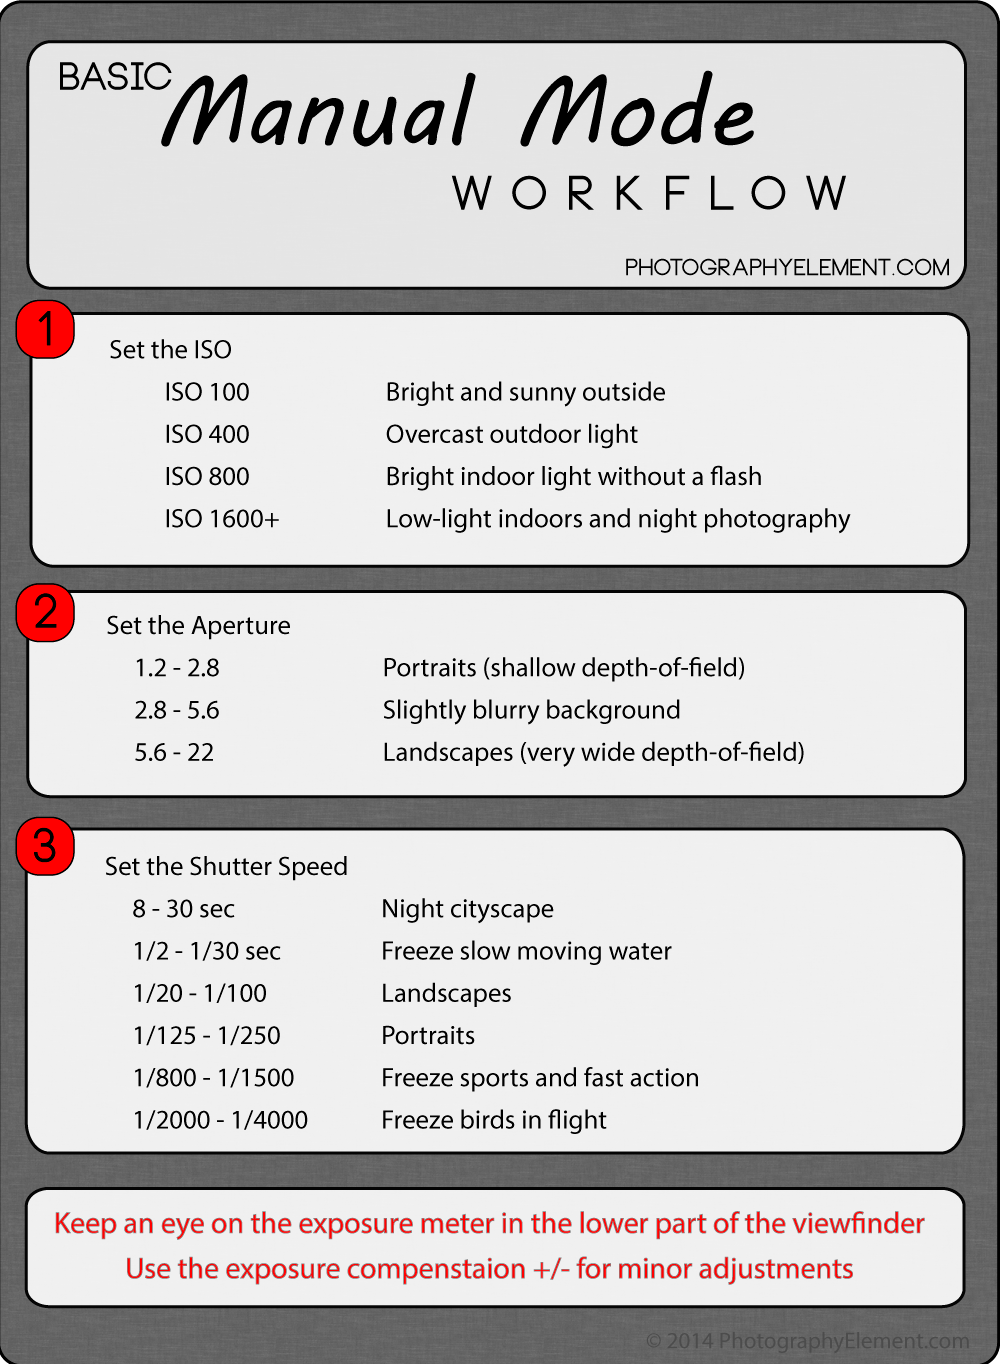 Manual mode workflow cheat sheet | Photography | Pinterest ...